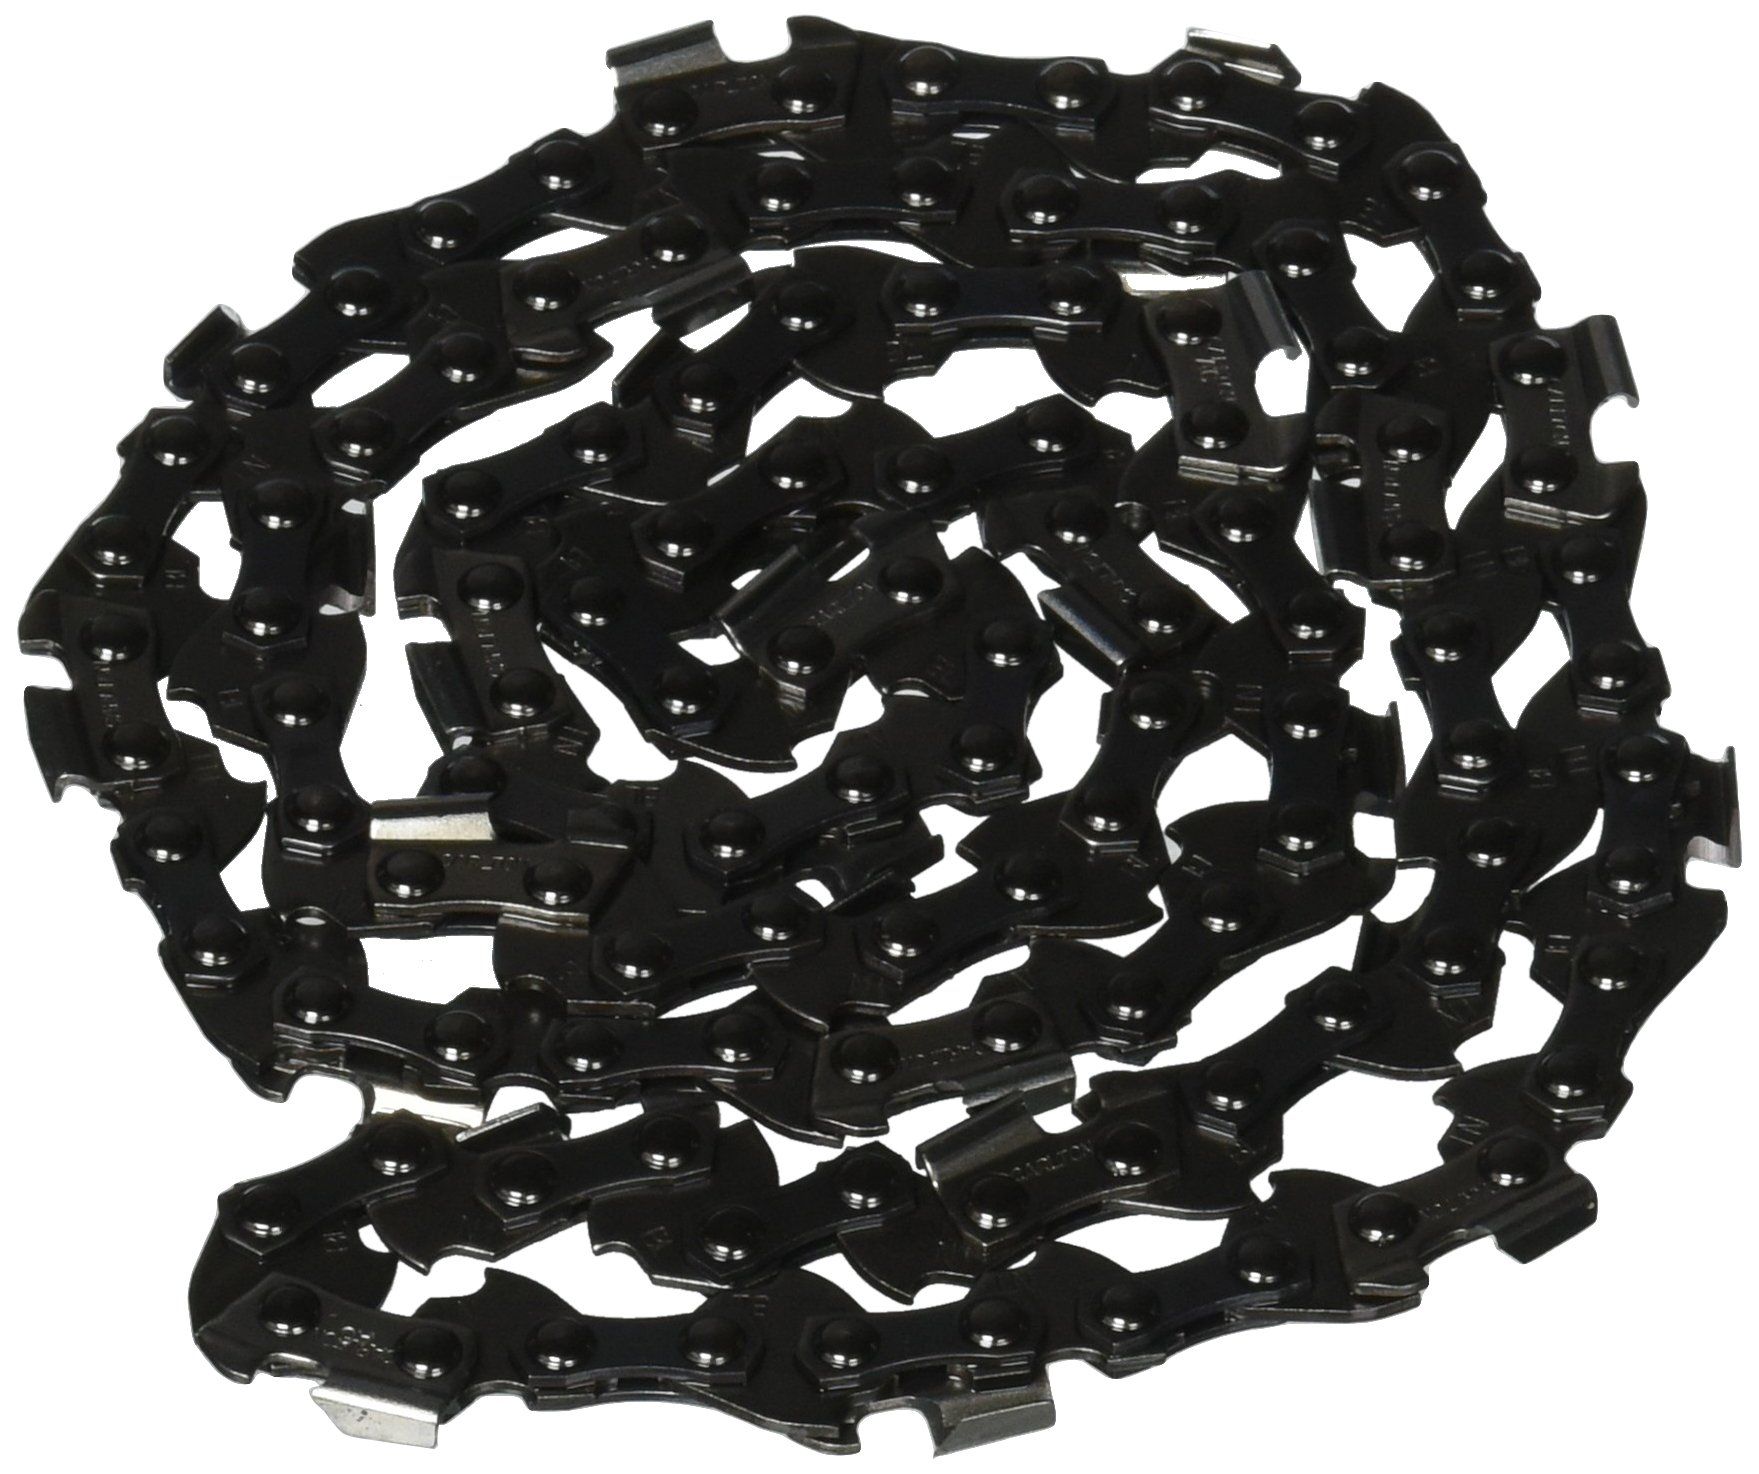 Poulan/Weed Eater Pp 16'' Repl Chain by Poulan